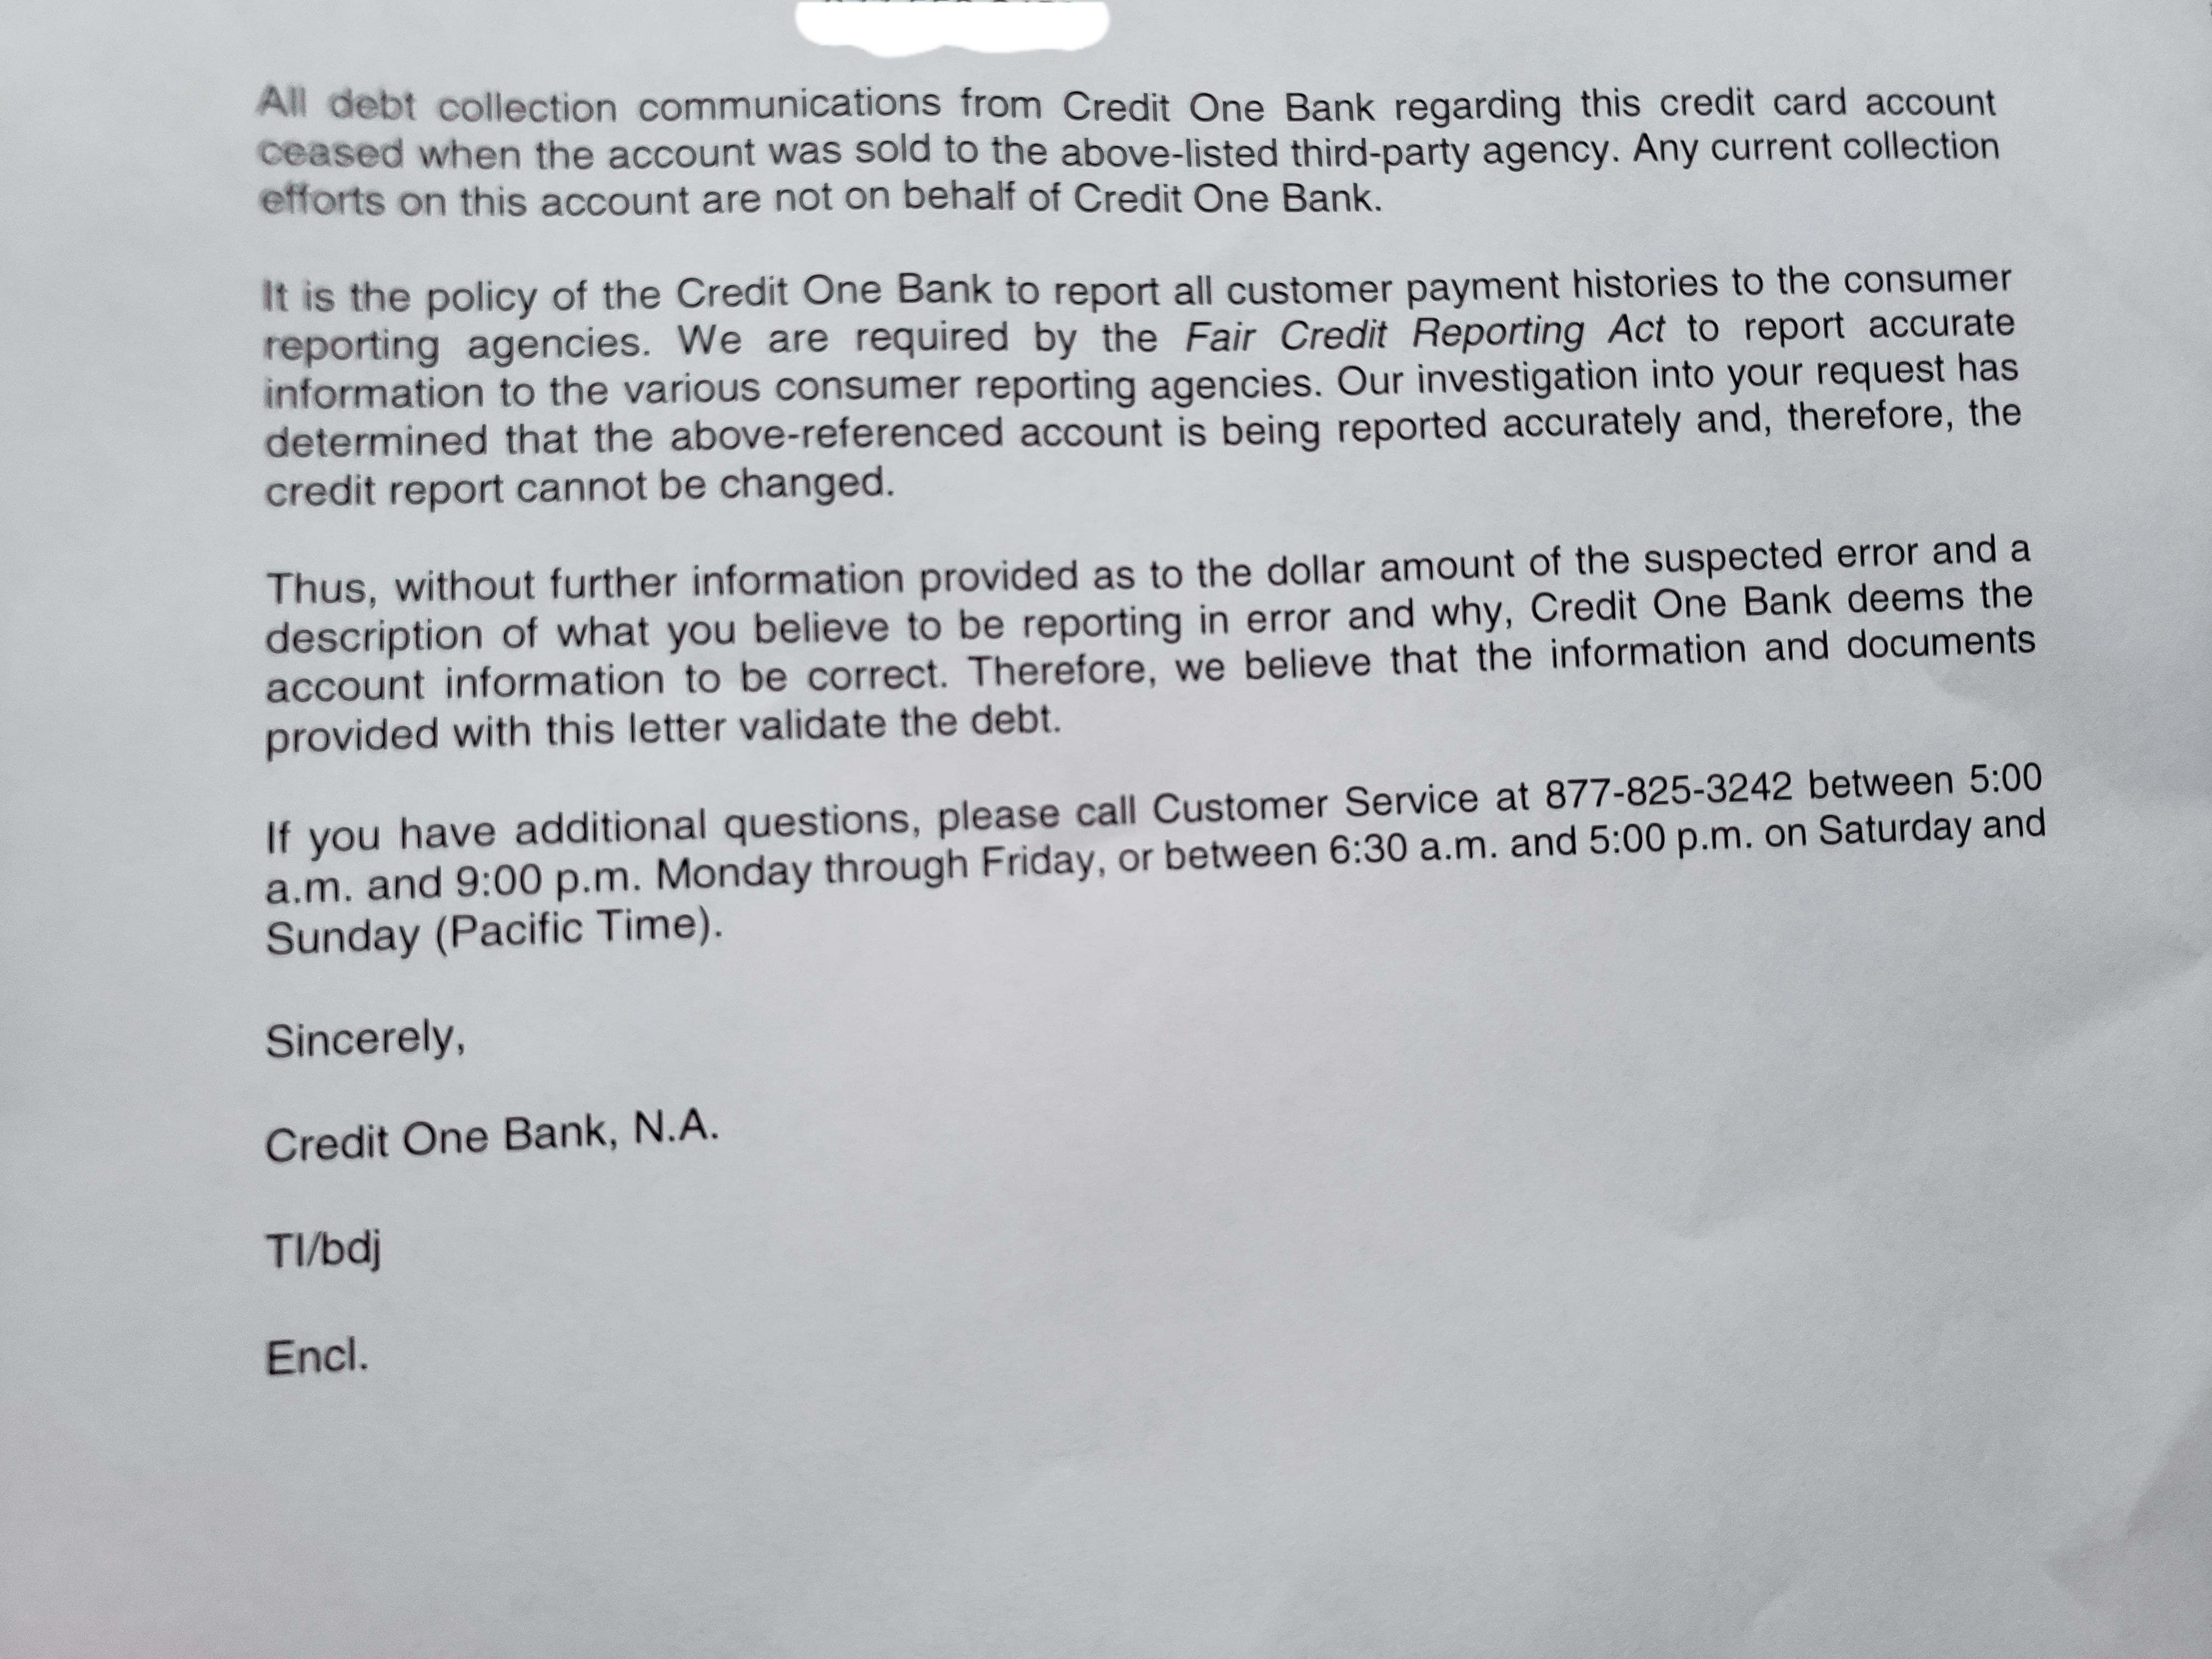 Credit One Bank & LVNV FUNDING LLC Letter Included - myFICO